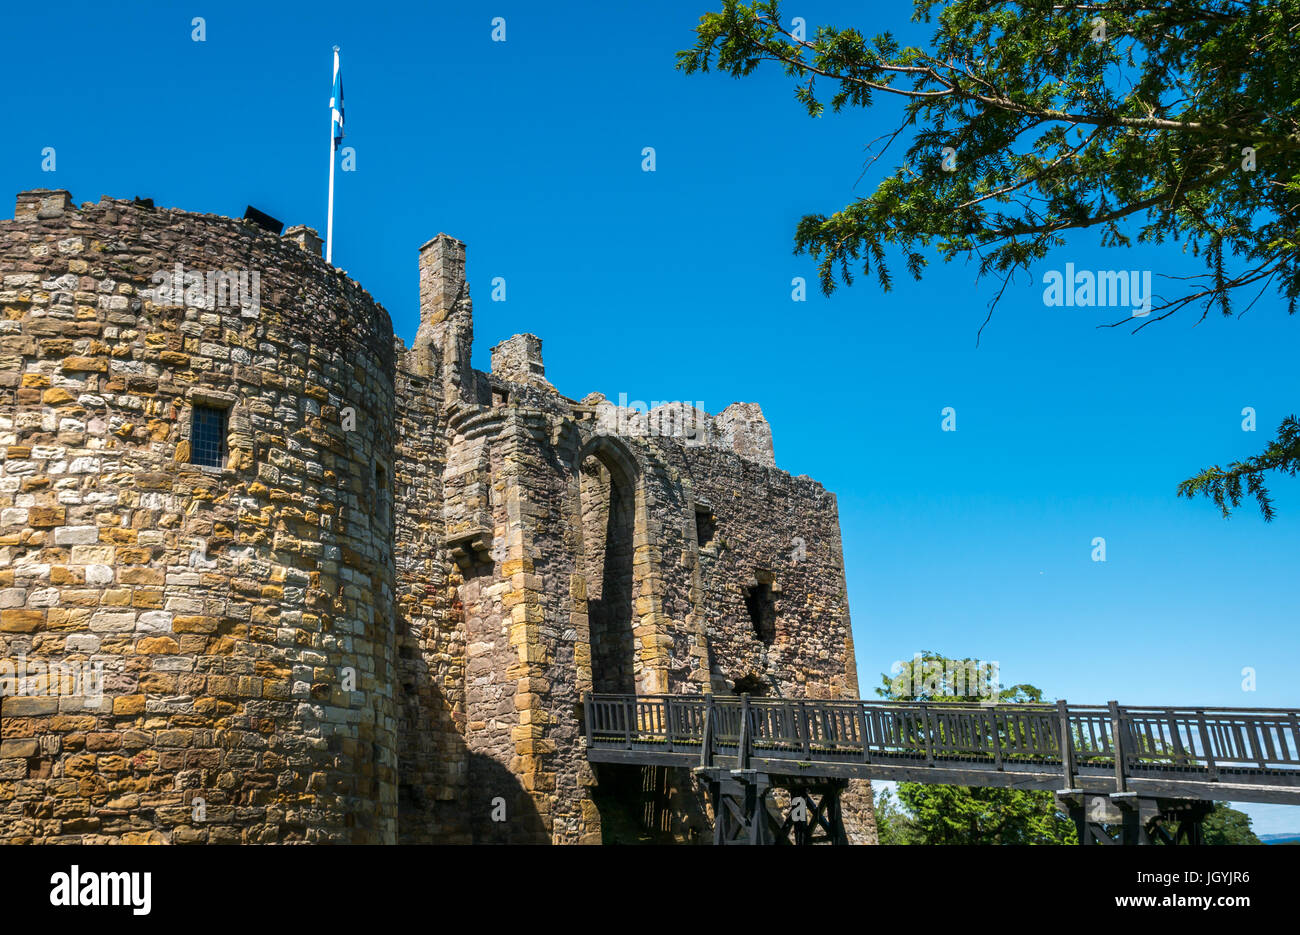 View of high stone walls, main gate over moat, 12th century medieval Dirleton Castle, East Lothian, Scotland, UK, - Stock Image